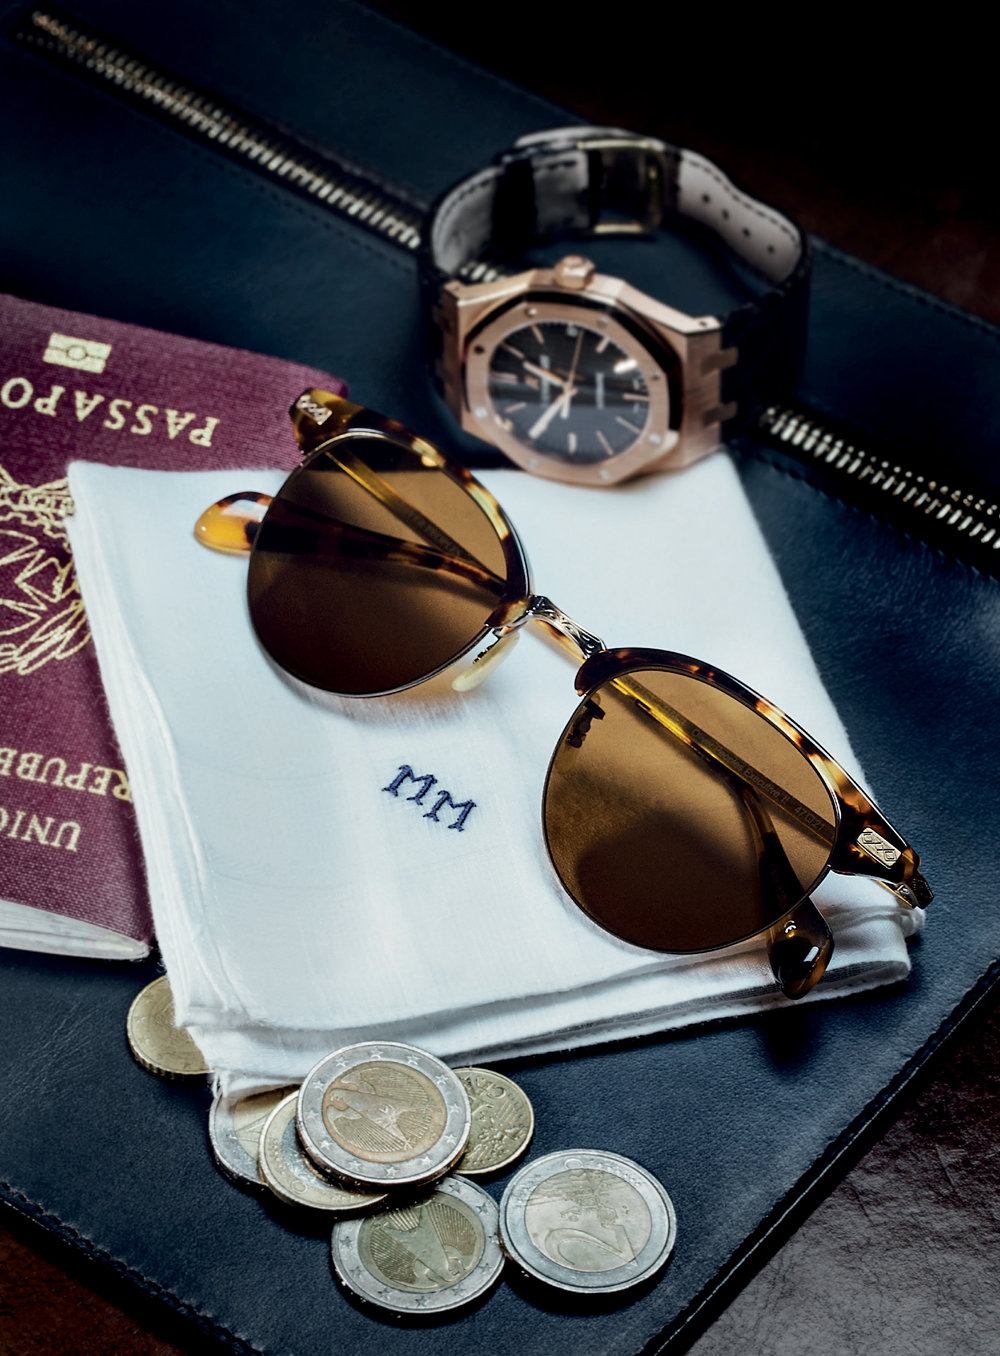 xecutive II sunglasses in dark tortoise brown acetate with brown cosmik tone lenses, antique gold ultra-thin titanium eye wire, and filigree detailing OLIVER PEOPLES  royal oak chronograph AUDEMARS PIGUET  navy leather travel pouch available at manoftheworld.com